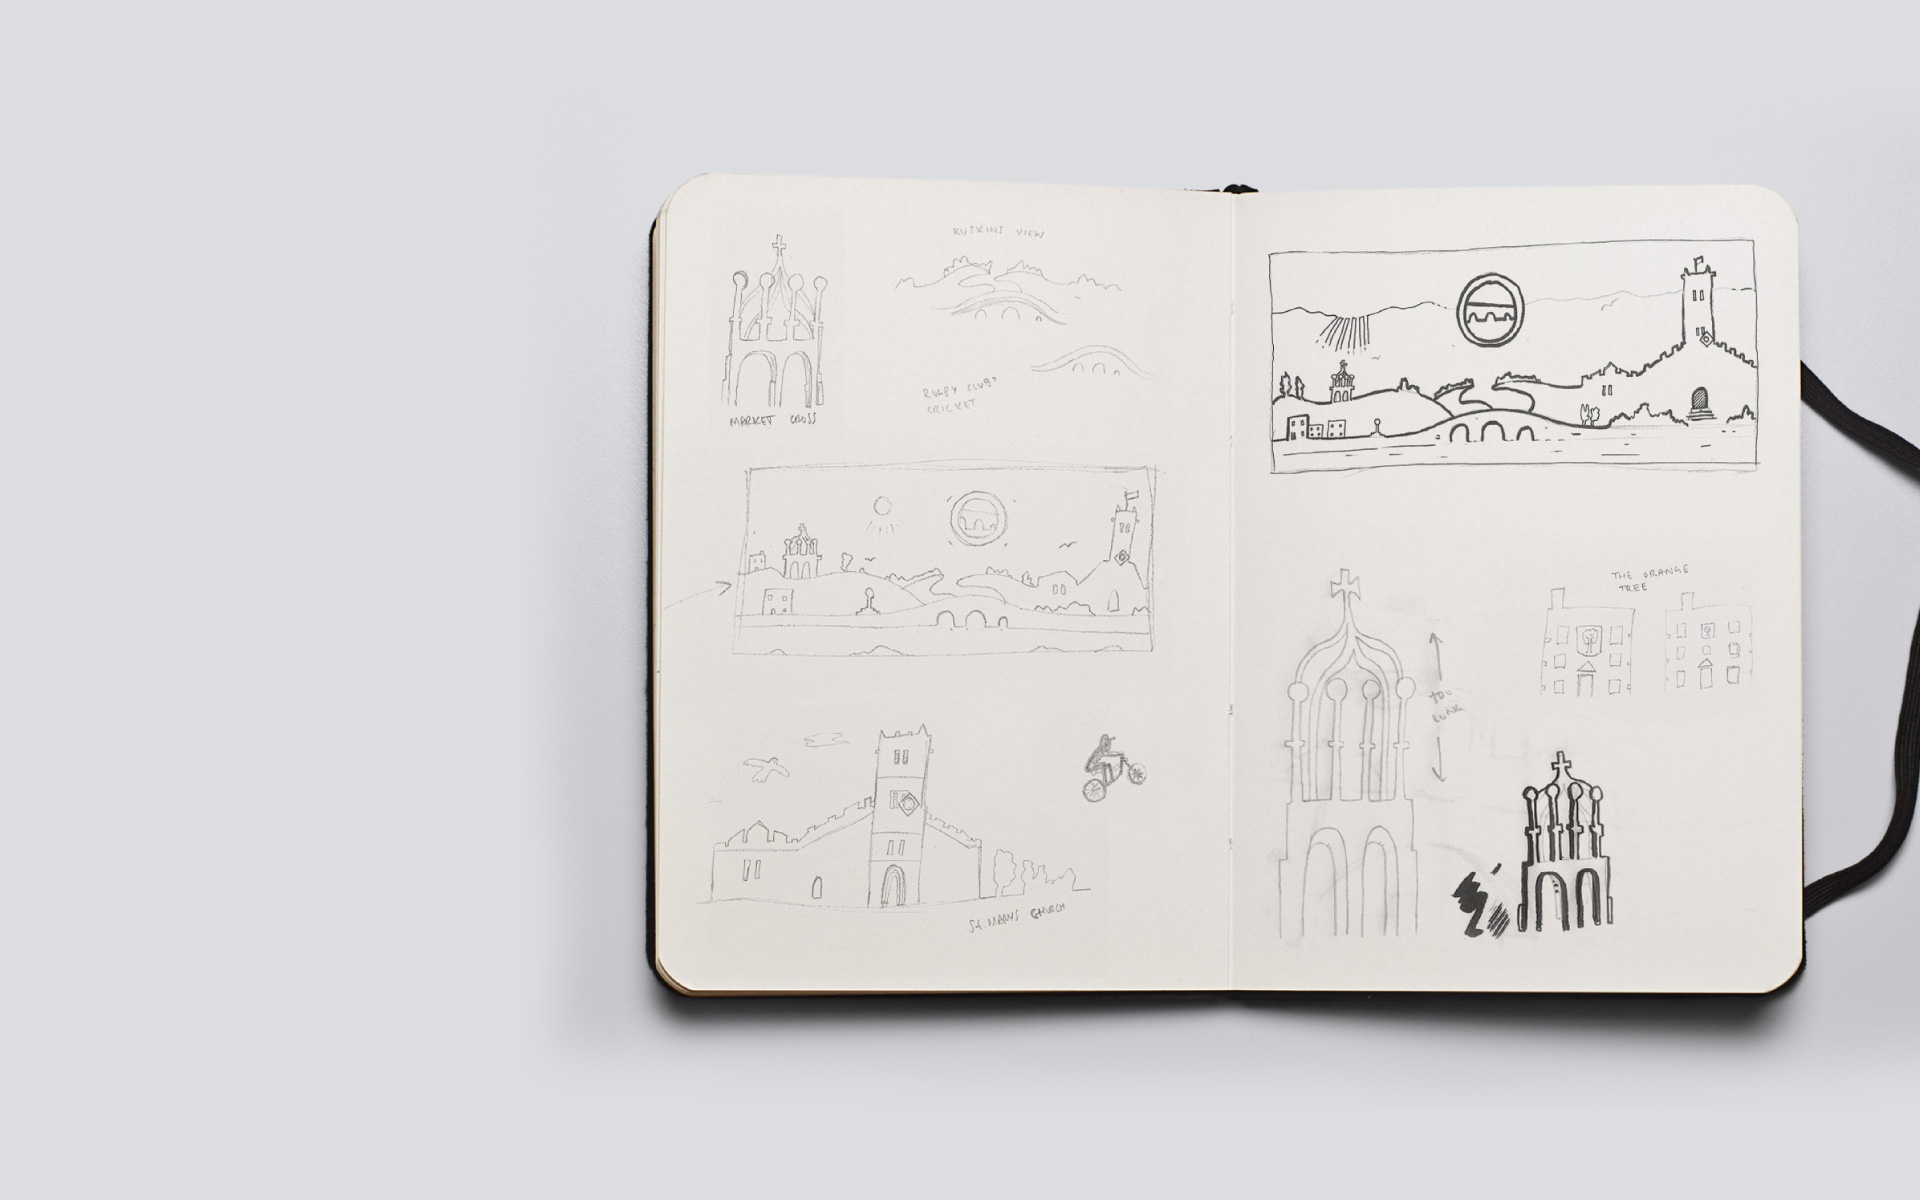 Kirkby Lonsdale Brewery lansdcape sketches